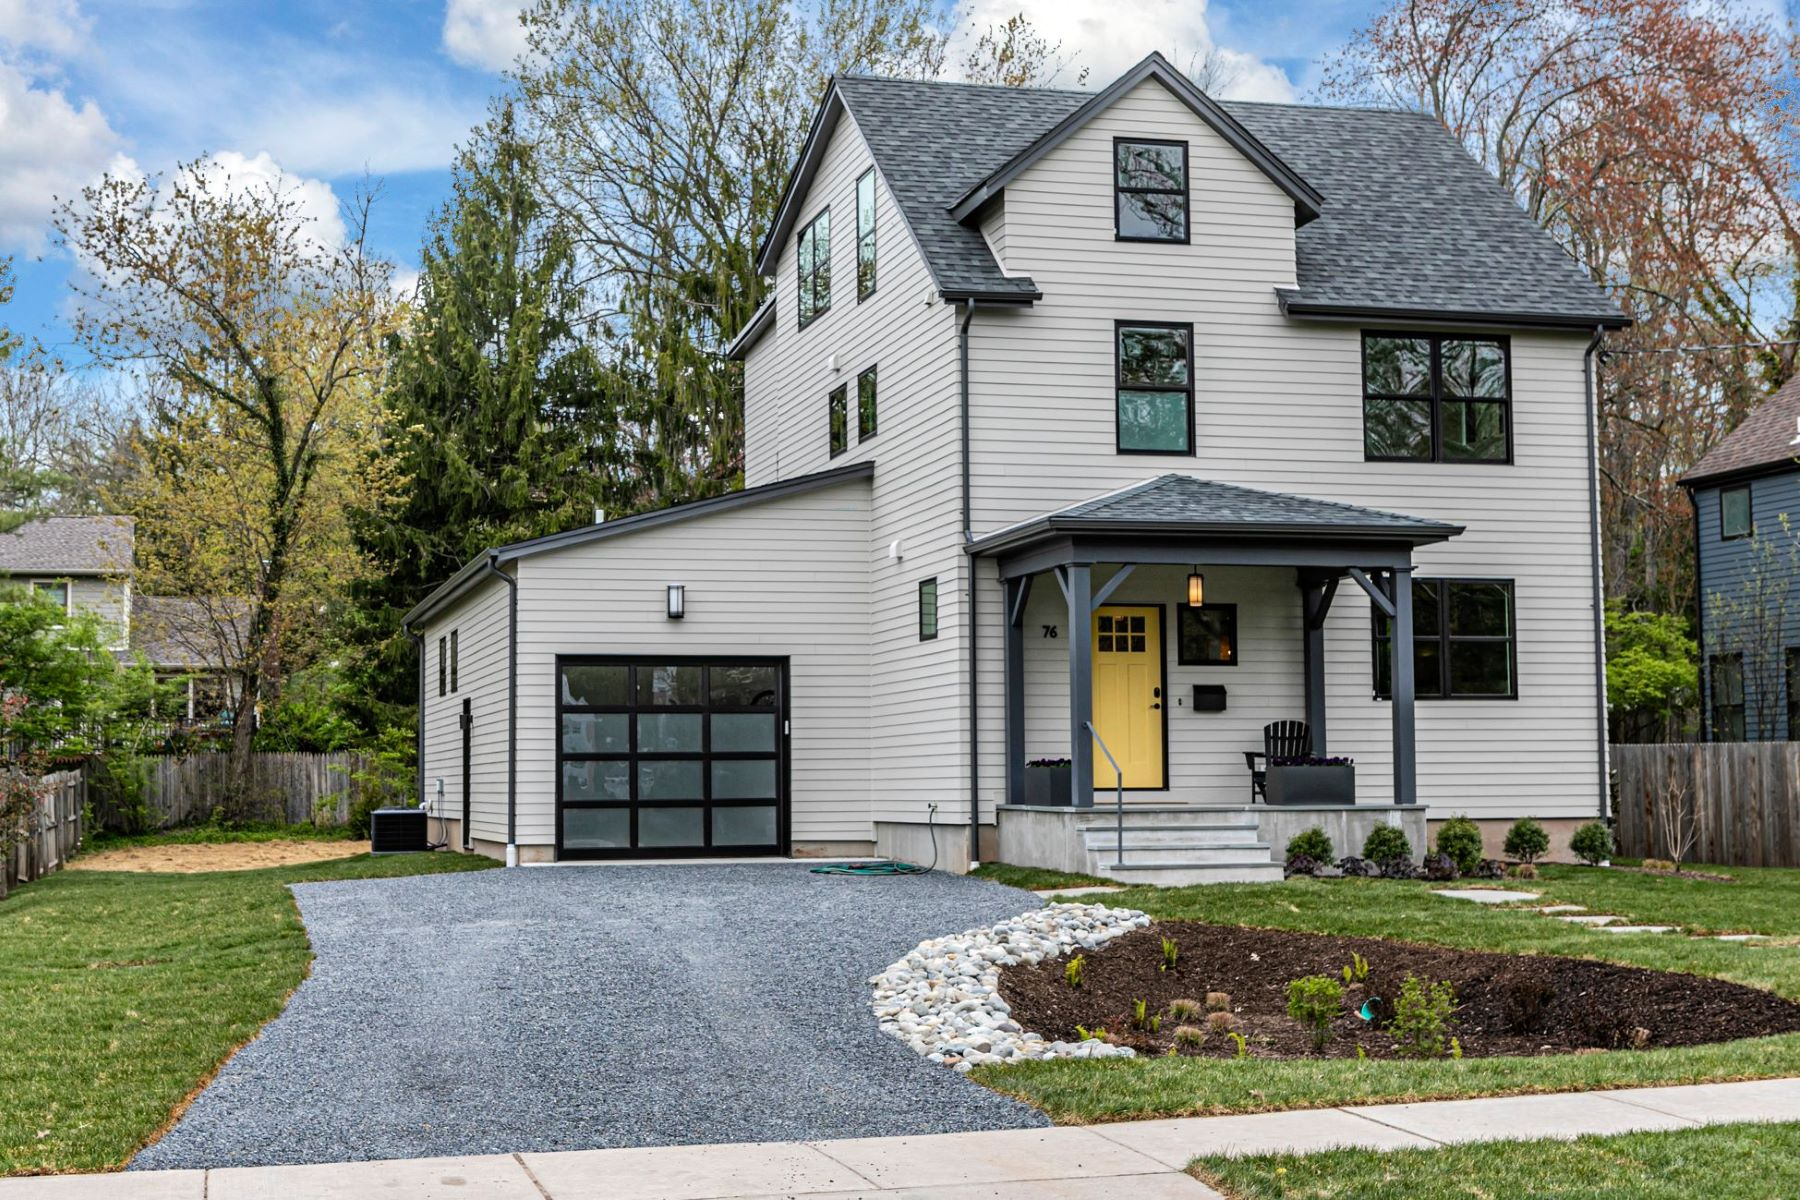 Single Family Homes for Sale at Sunny & Stylish New Home Is As Green As It Gets 76 Valley Road, Princeton, New Jersey 08540 United States